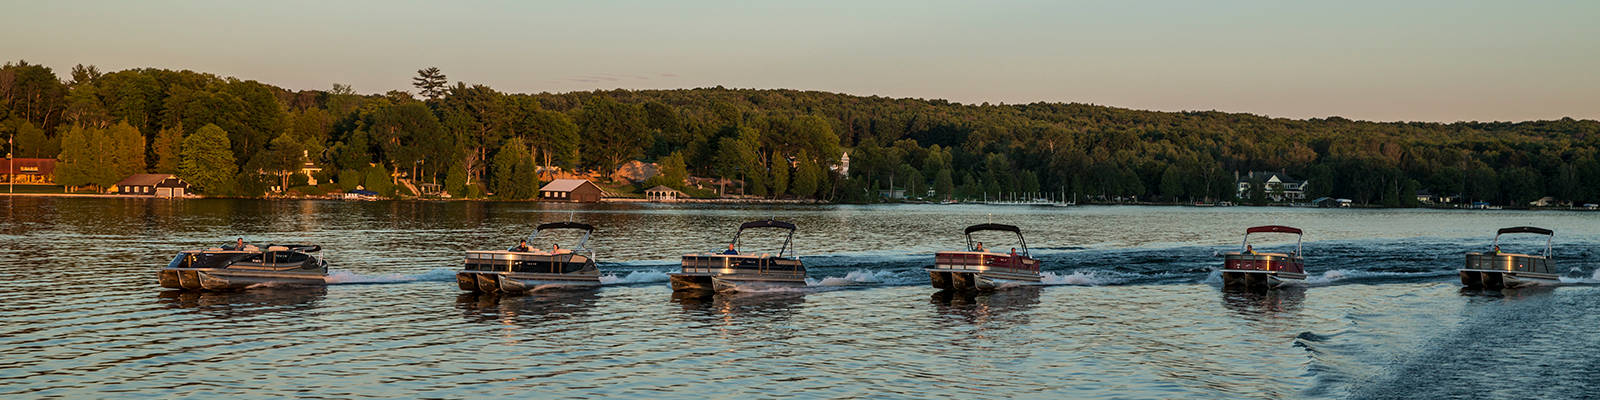 Crest Pontoon boats